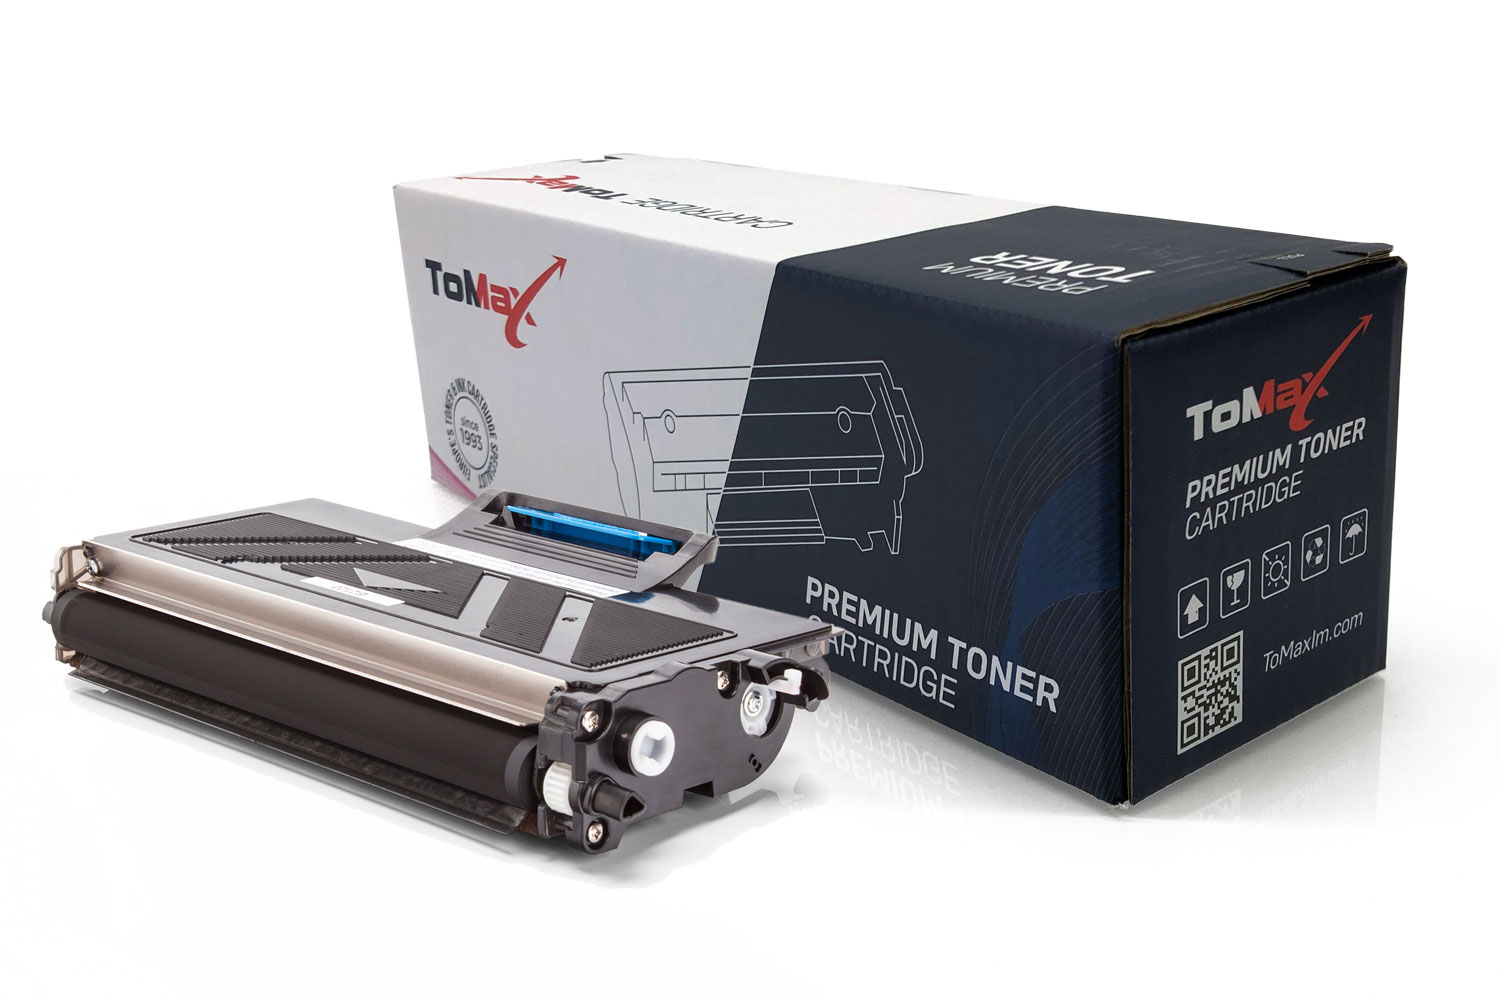 ToMax Premium Toner Cartridge replaces Canon 3500B002 / EP728 Black